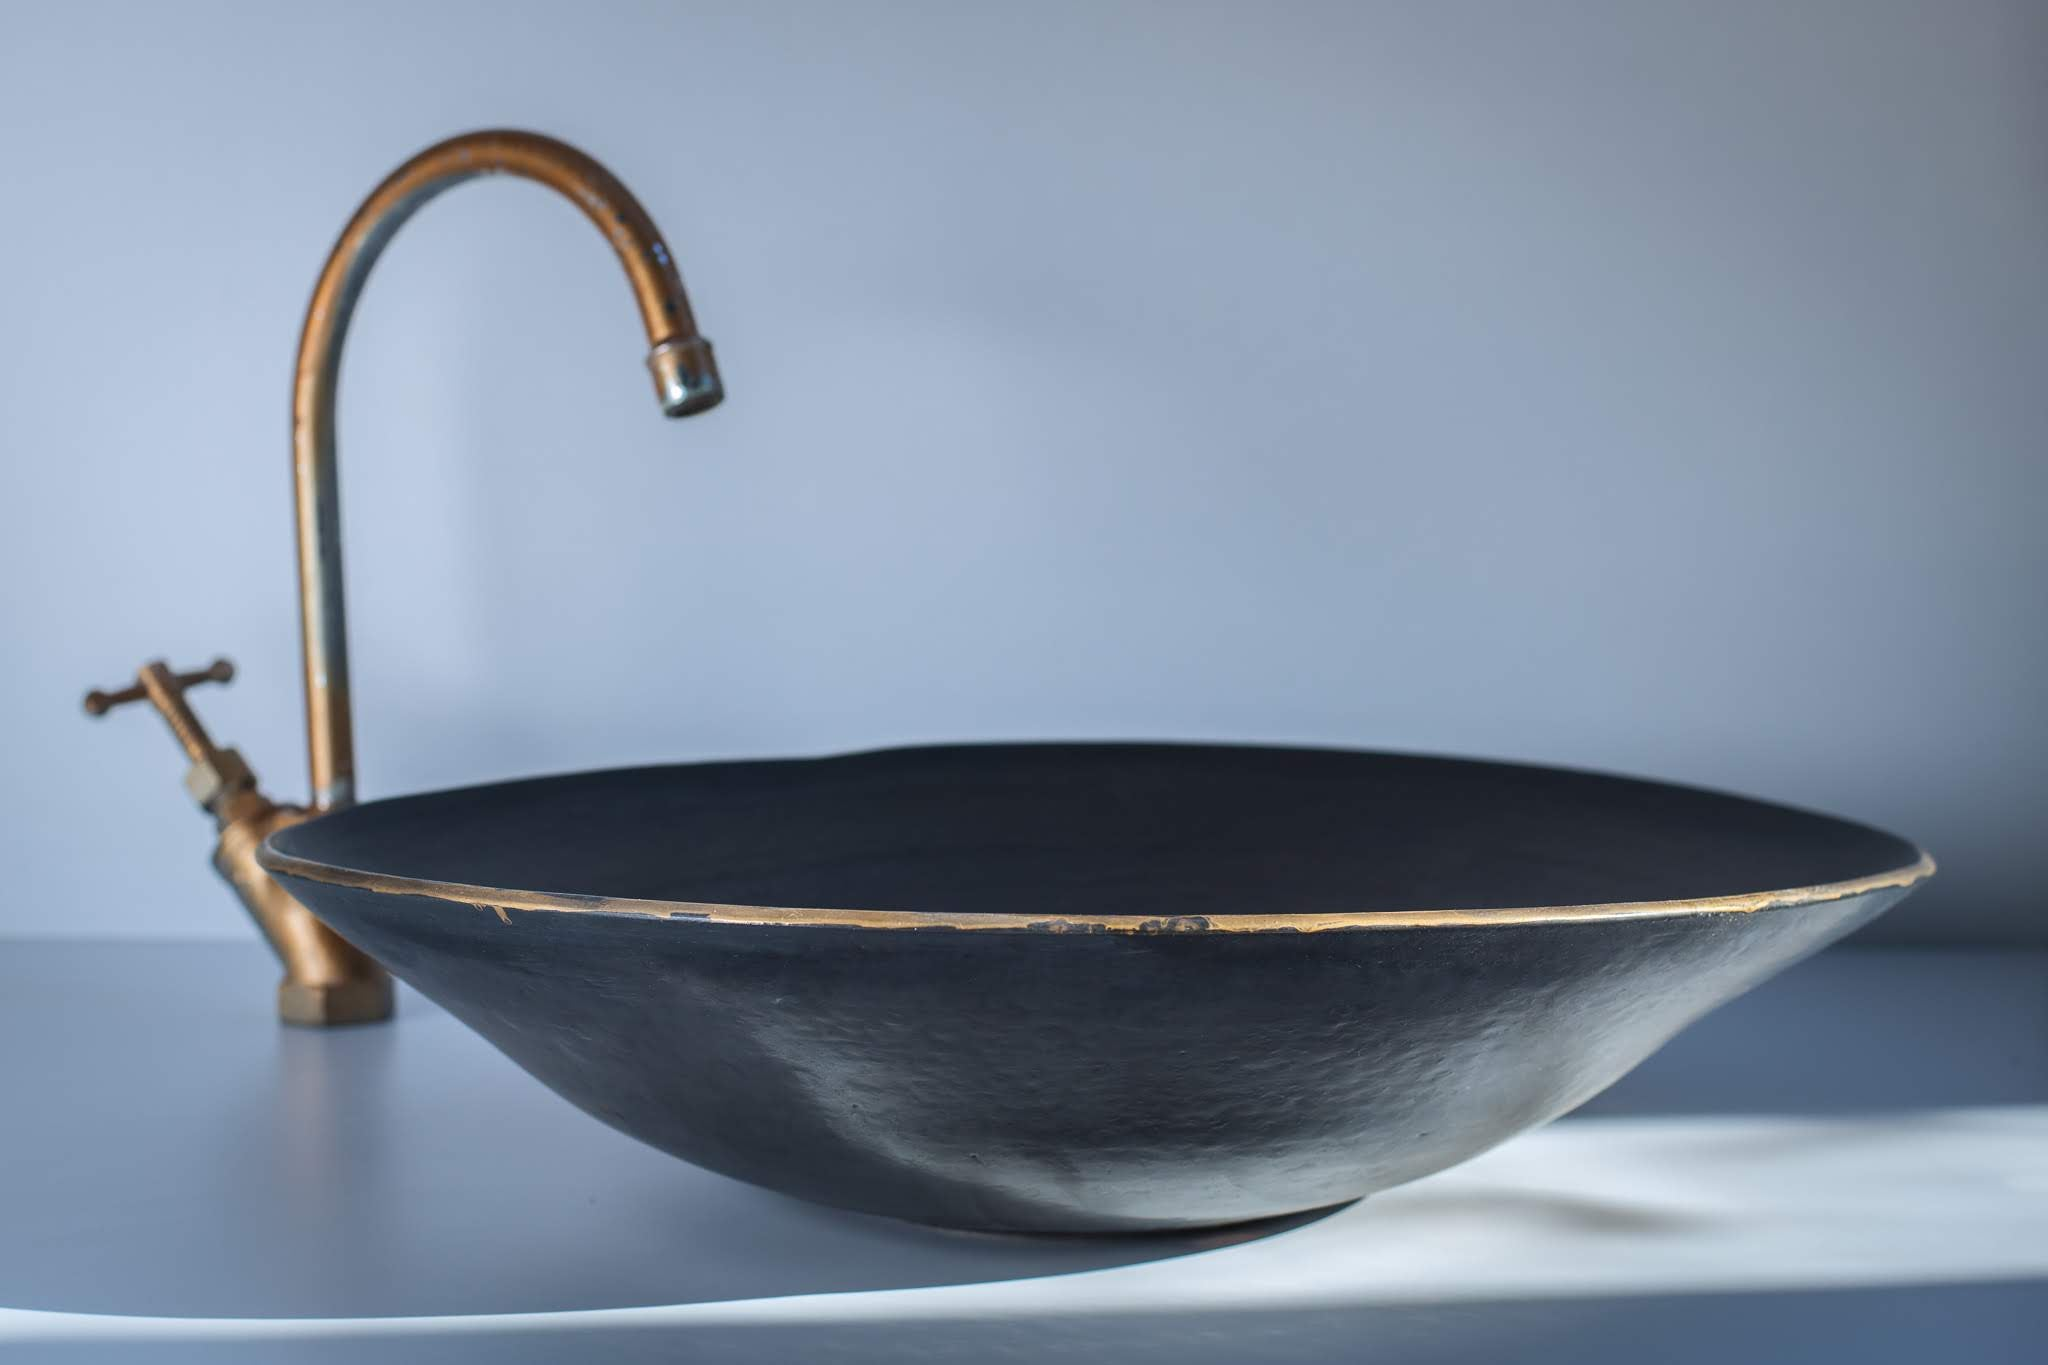 Black Star Handcrafted Sink by Naiimpottery